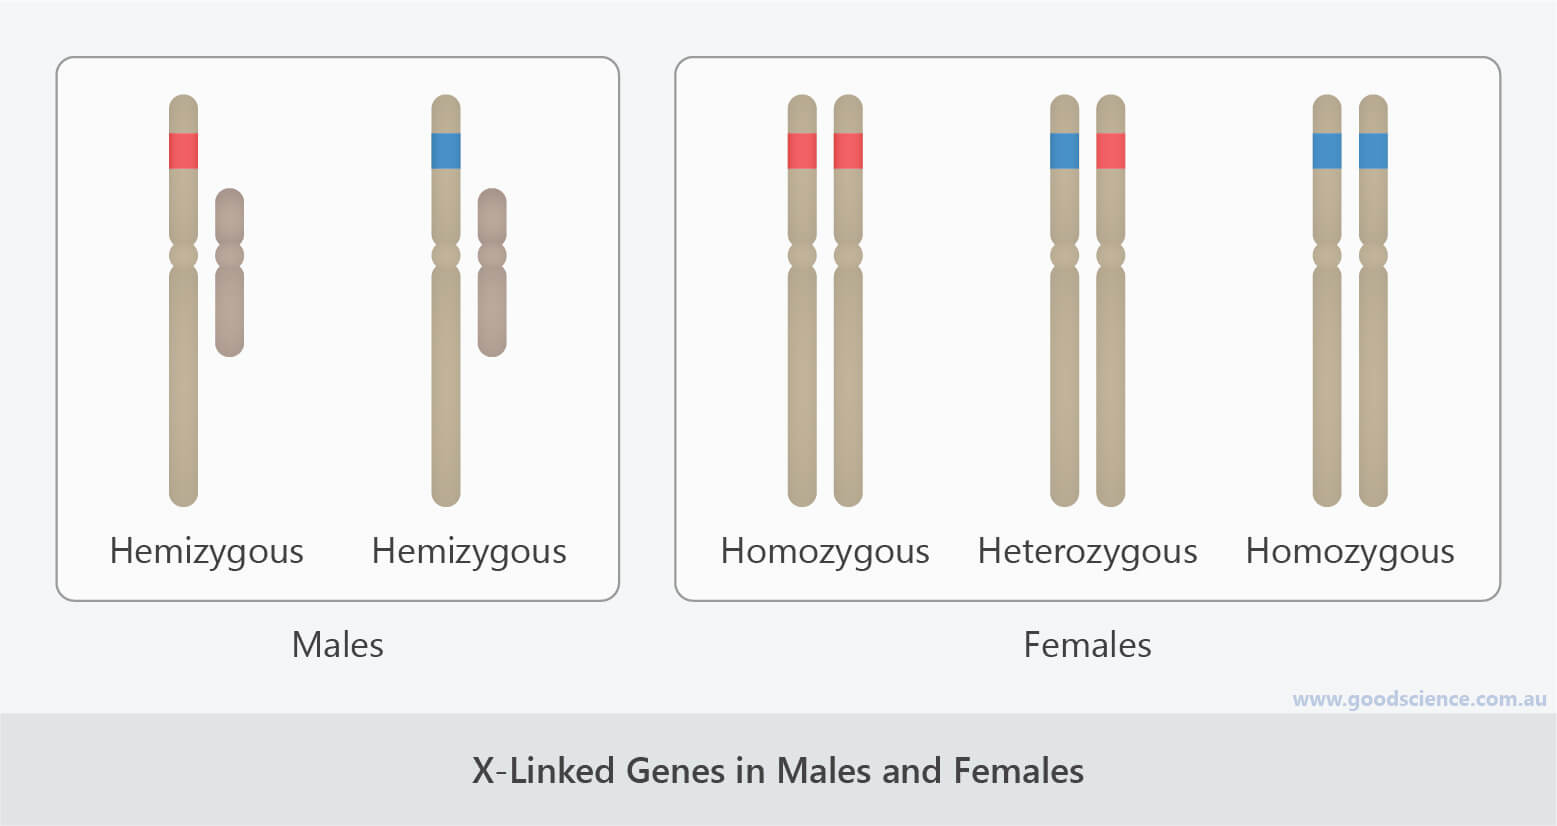 x-linked genes in males and females